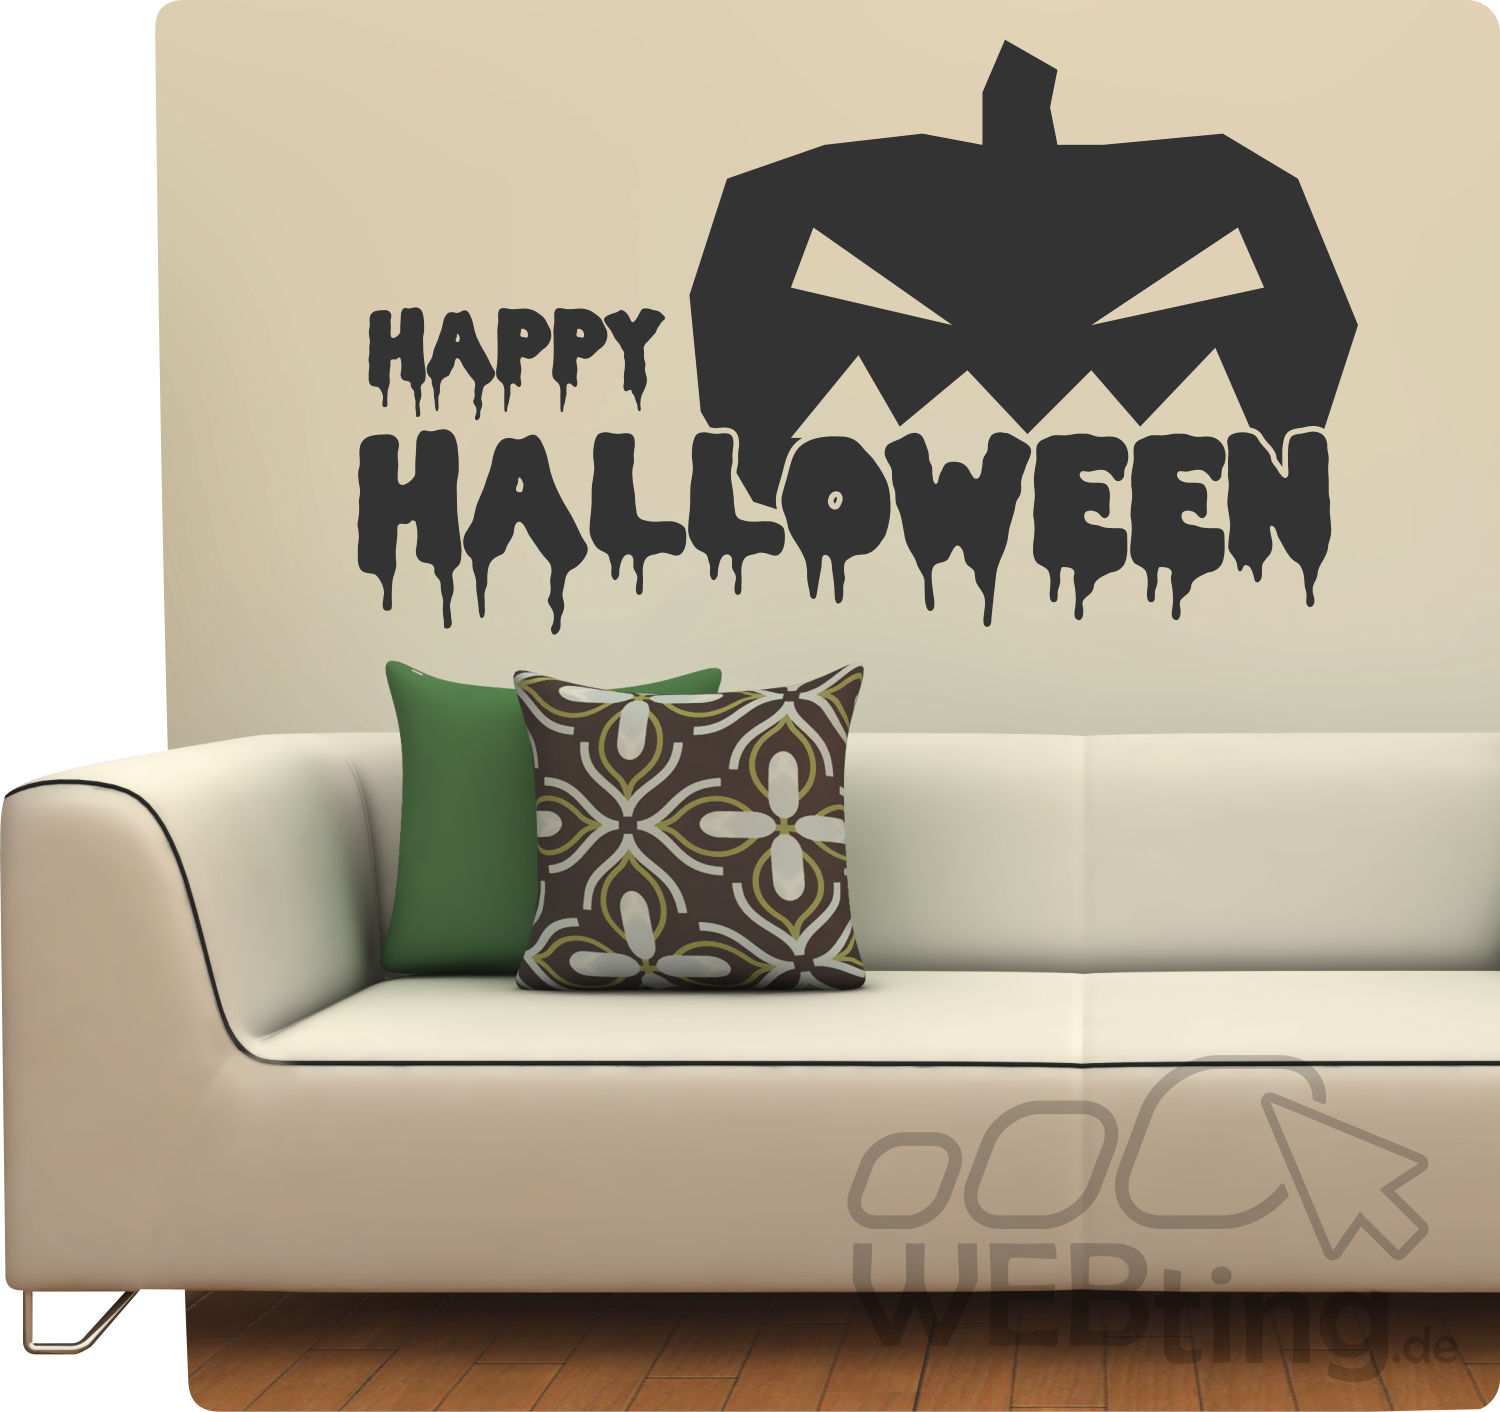 halloween k rbis fledermaus deko wandtattoo wandaufkleber. Black Bedroom Furniture Sets. Home Design Ideas